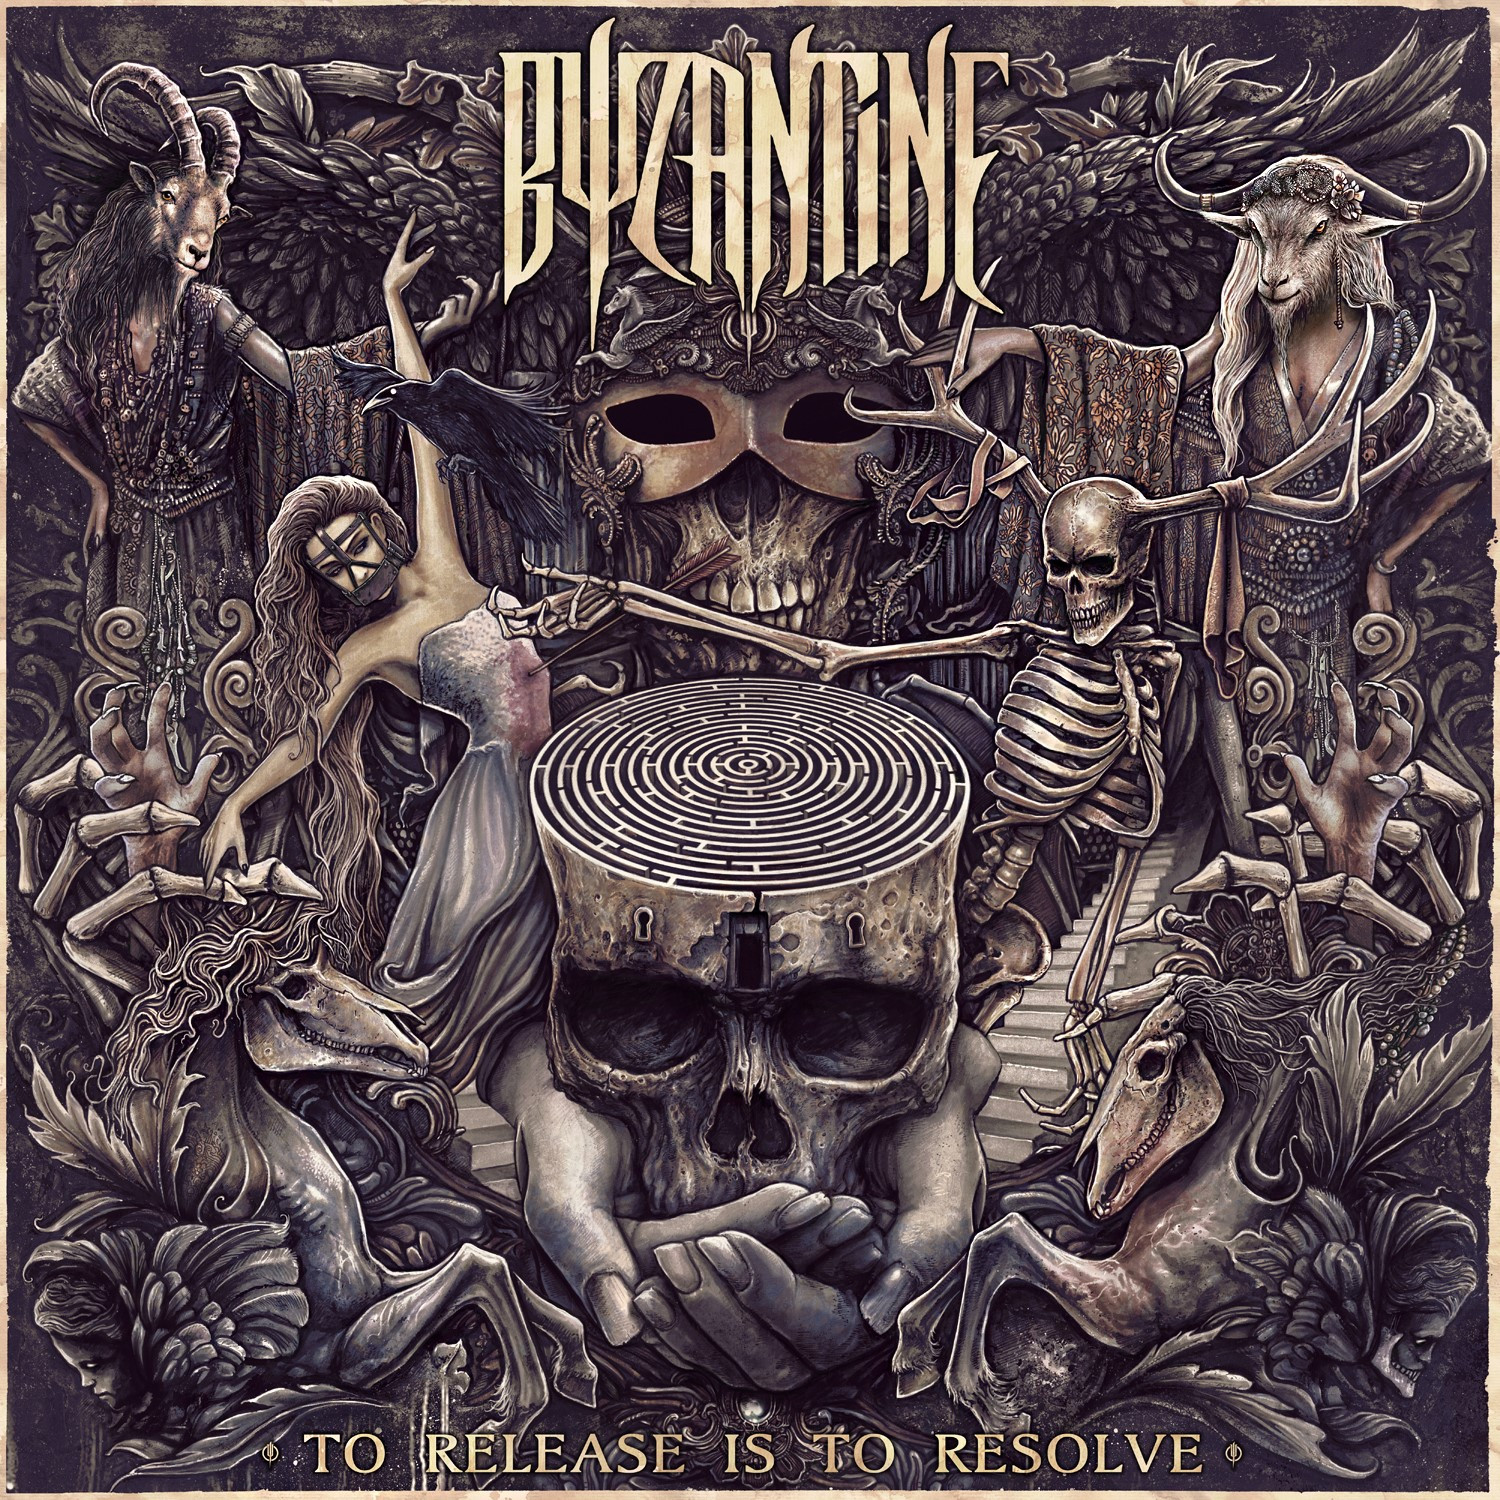 Byzantine-To Release Is To Resolve